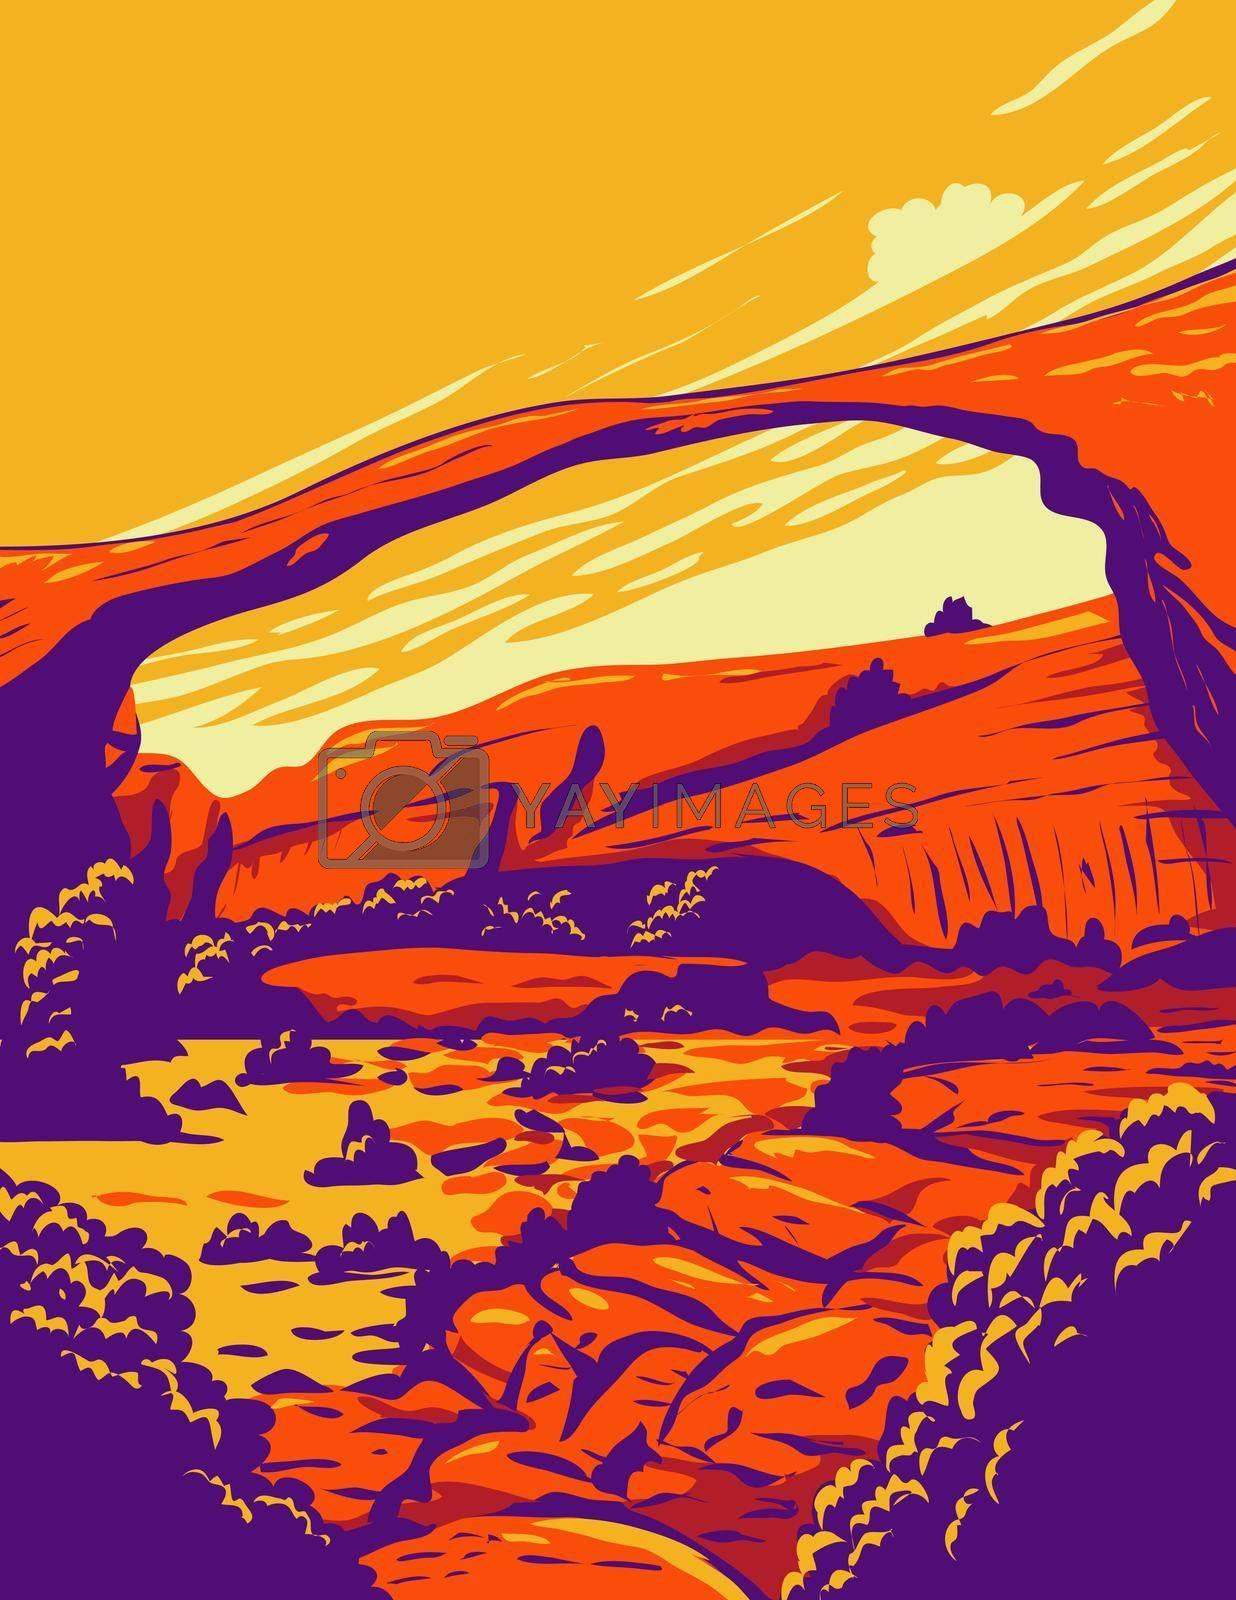 WPA poster art of the Landscape Arch, the longest of the many natural rock arches located in Arches National Park, Utah United States done in works project administration or federal art project style.